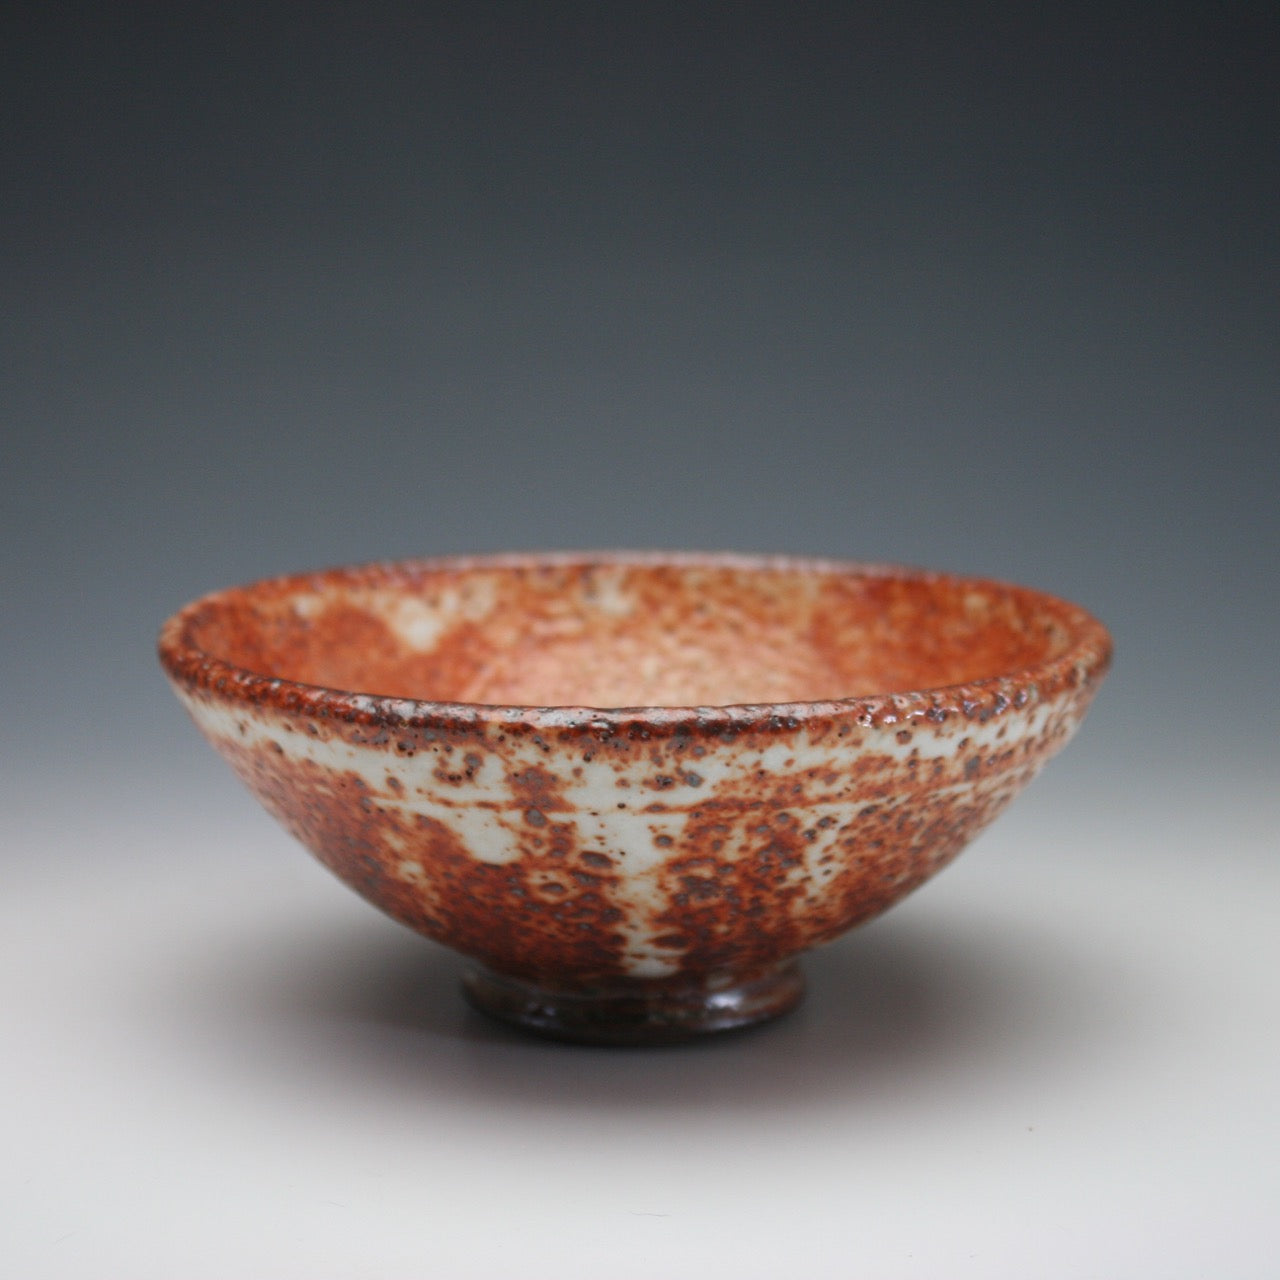 Shino Bowl Single Serving Dish